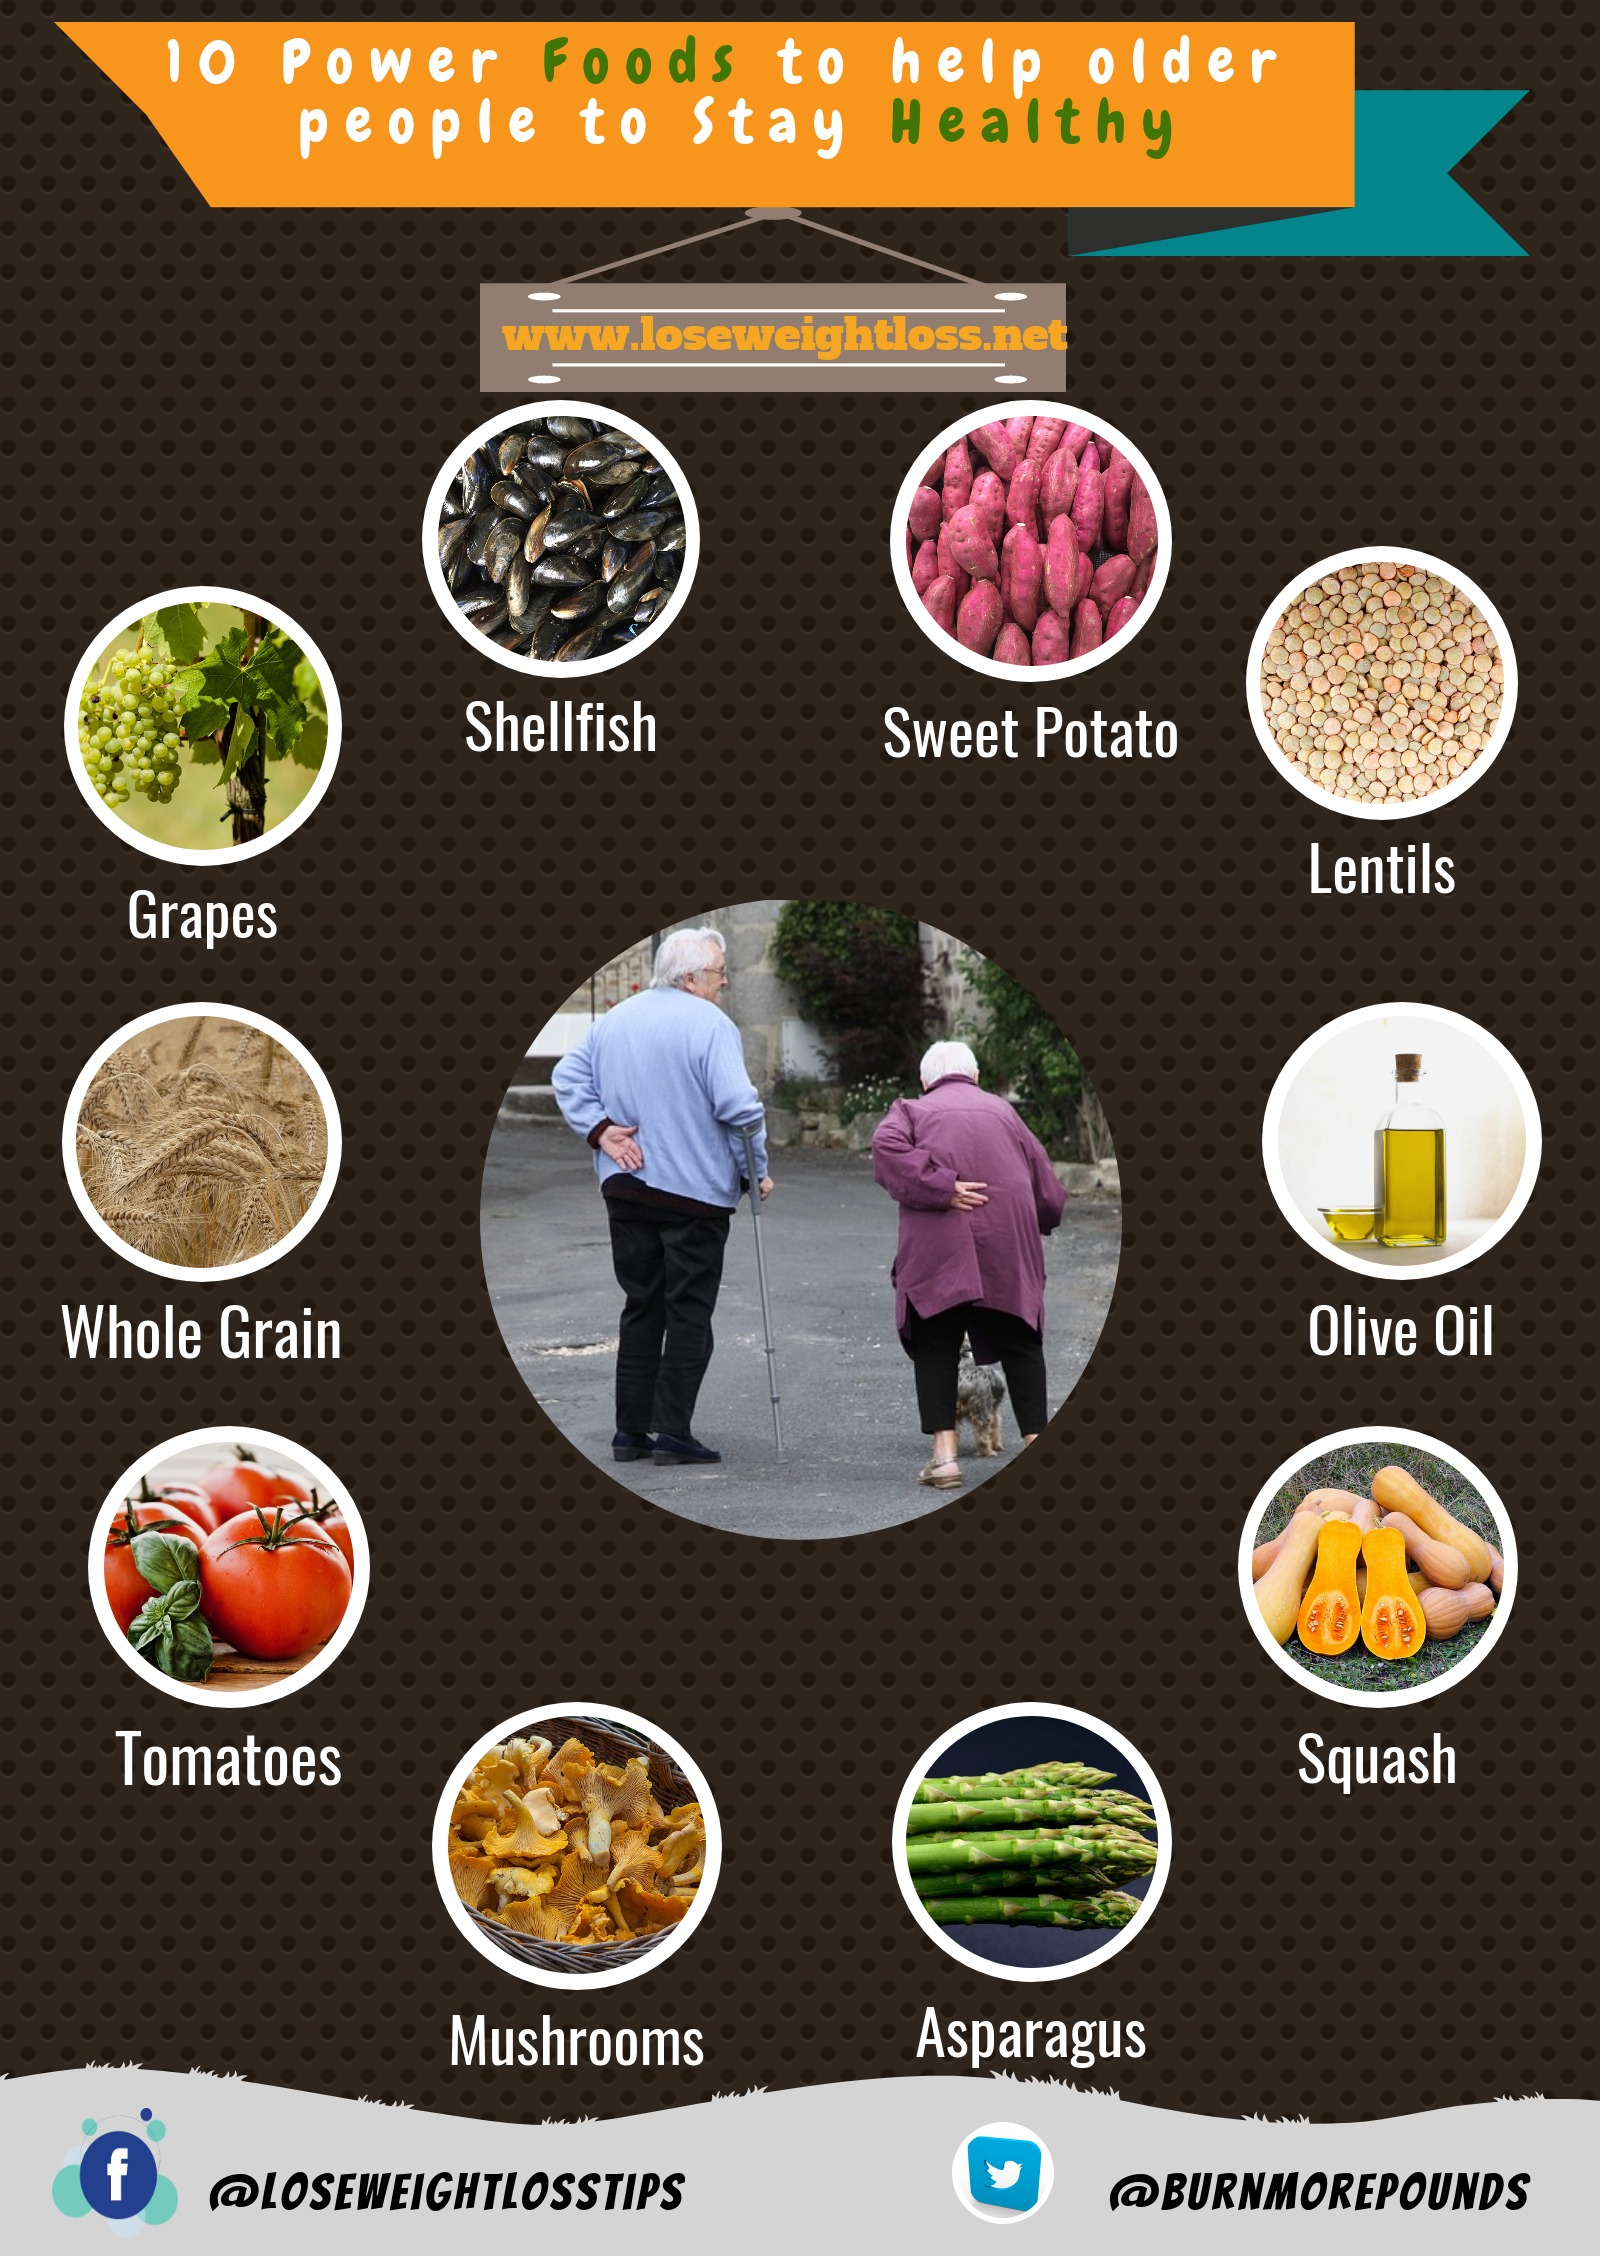 Healthy foods for older people to stay healthy